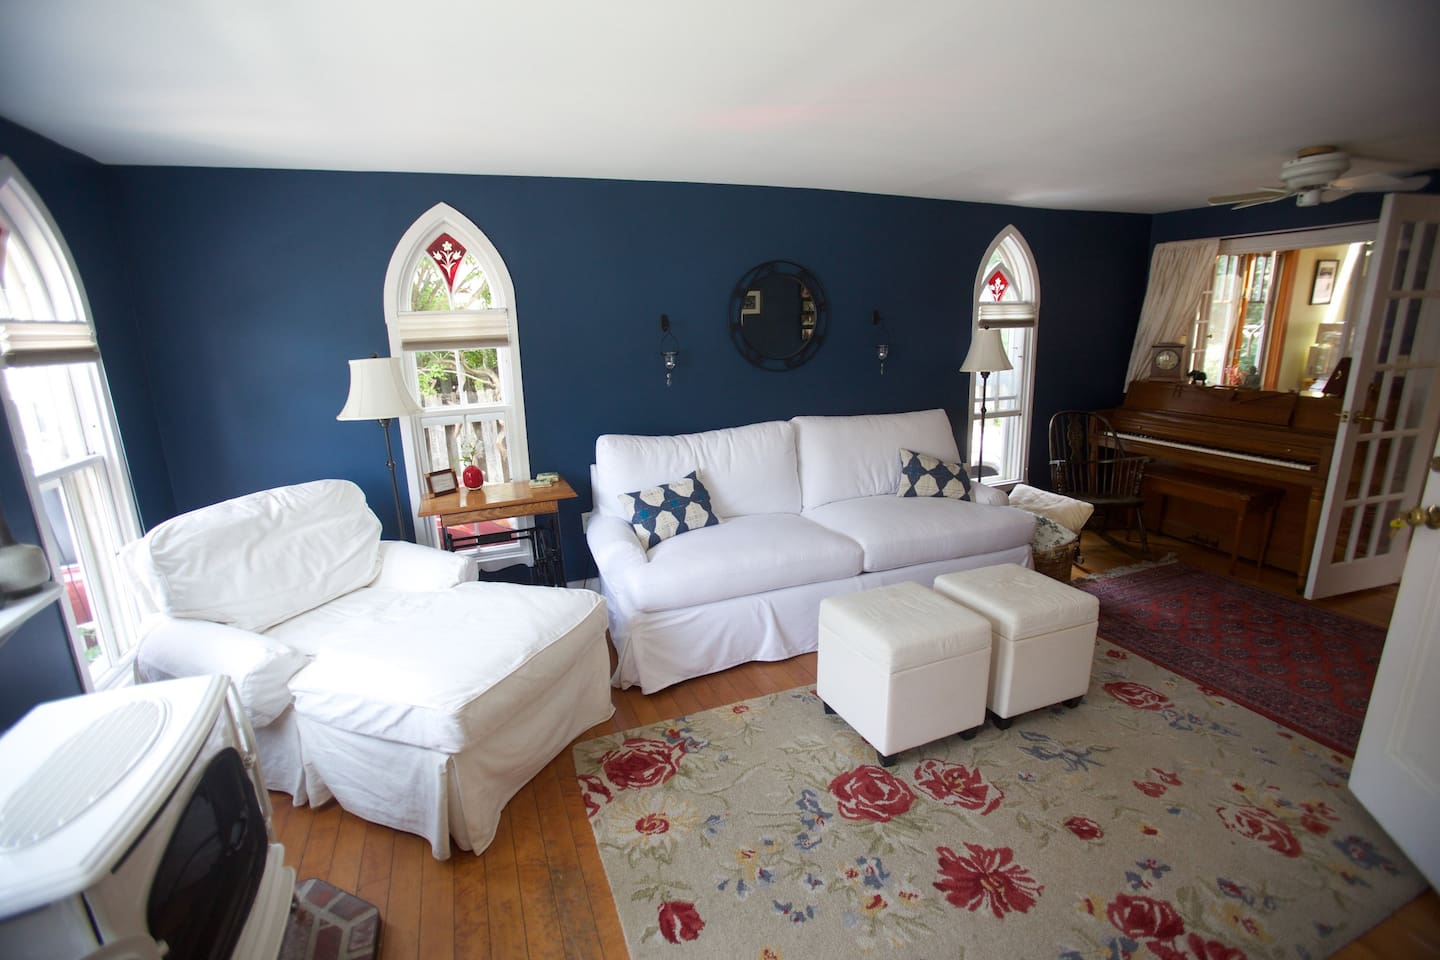 Living room with historic cathedral ruby glass windows, brand new high end sofa bed, pellet stove and piano. This living room can be closed off entirely with french windows and doors for privacy, and used as a lovely second bedroom.